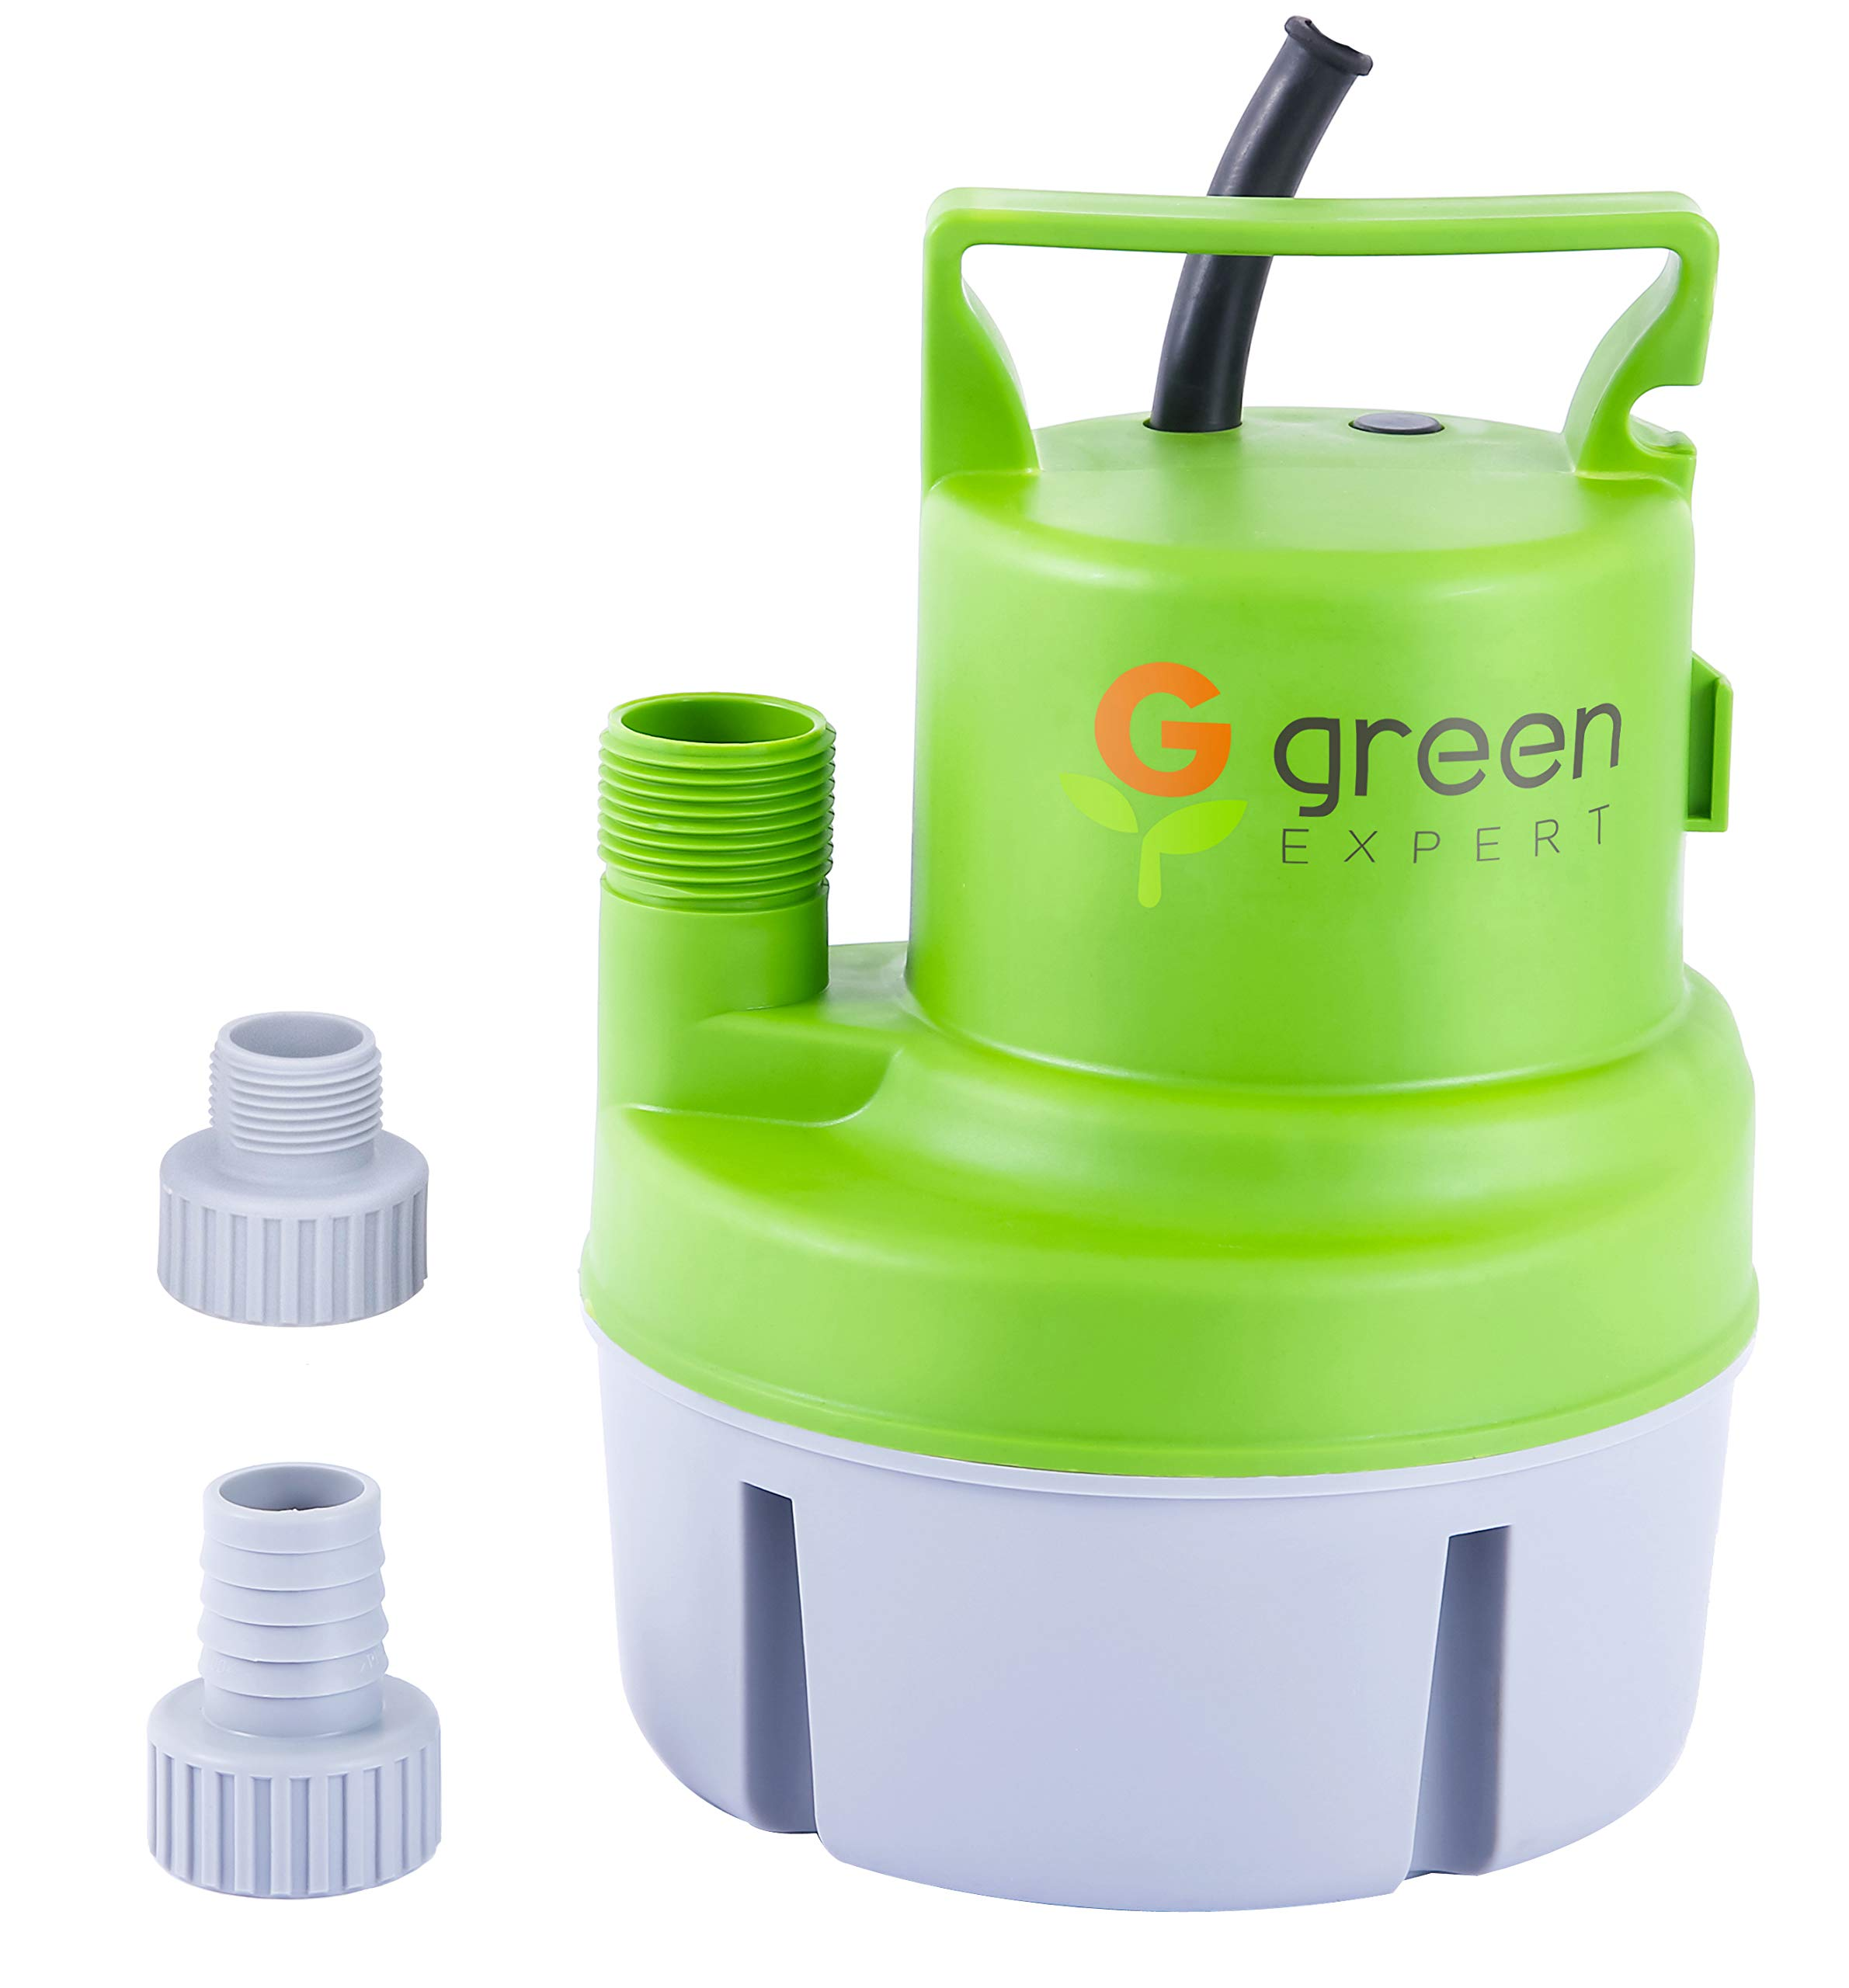 Green Expert 203617 1/6 HP Portable Submersible Utility Pump with Max 1056 GPH Flow Efficiently for Water Removal Basement Flood Drainage Pump, suit to Standard Garden hose, 25 feet Cord by G green EXPERT